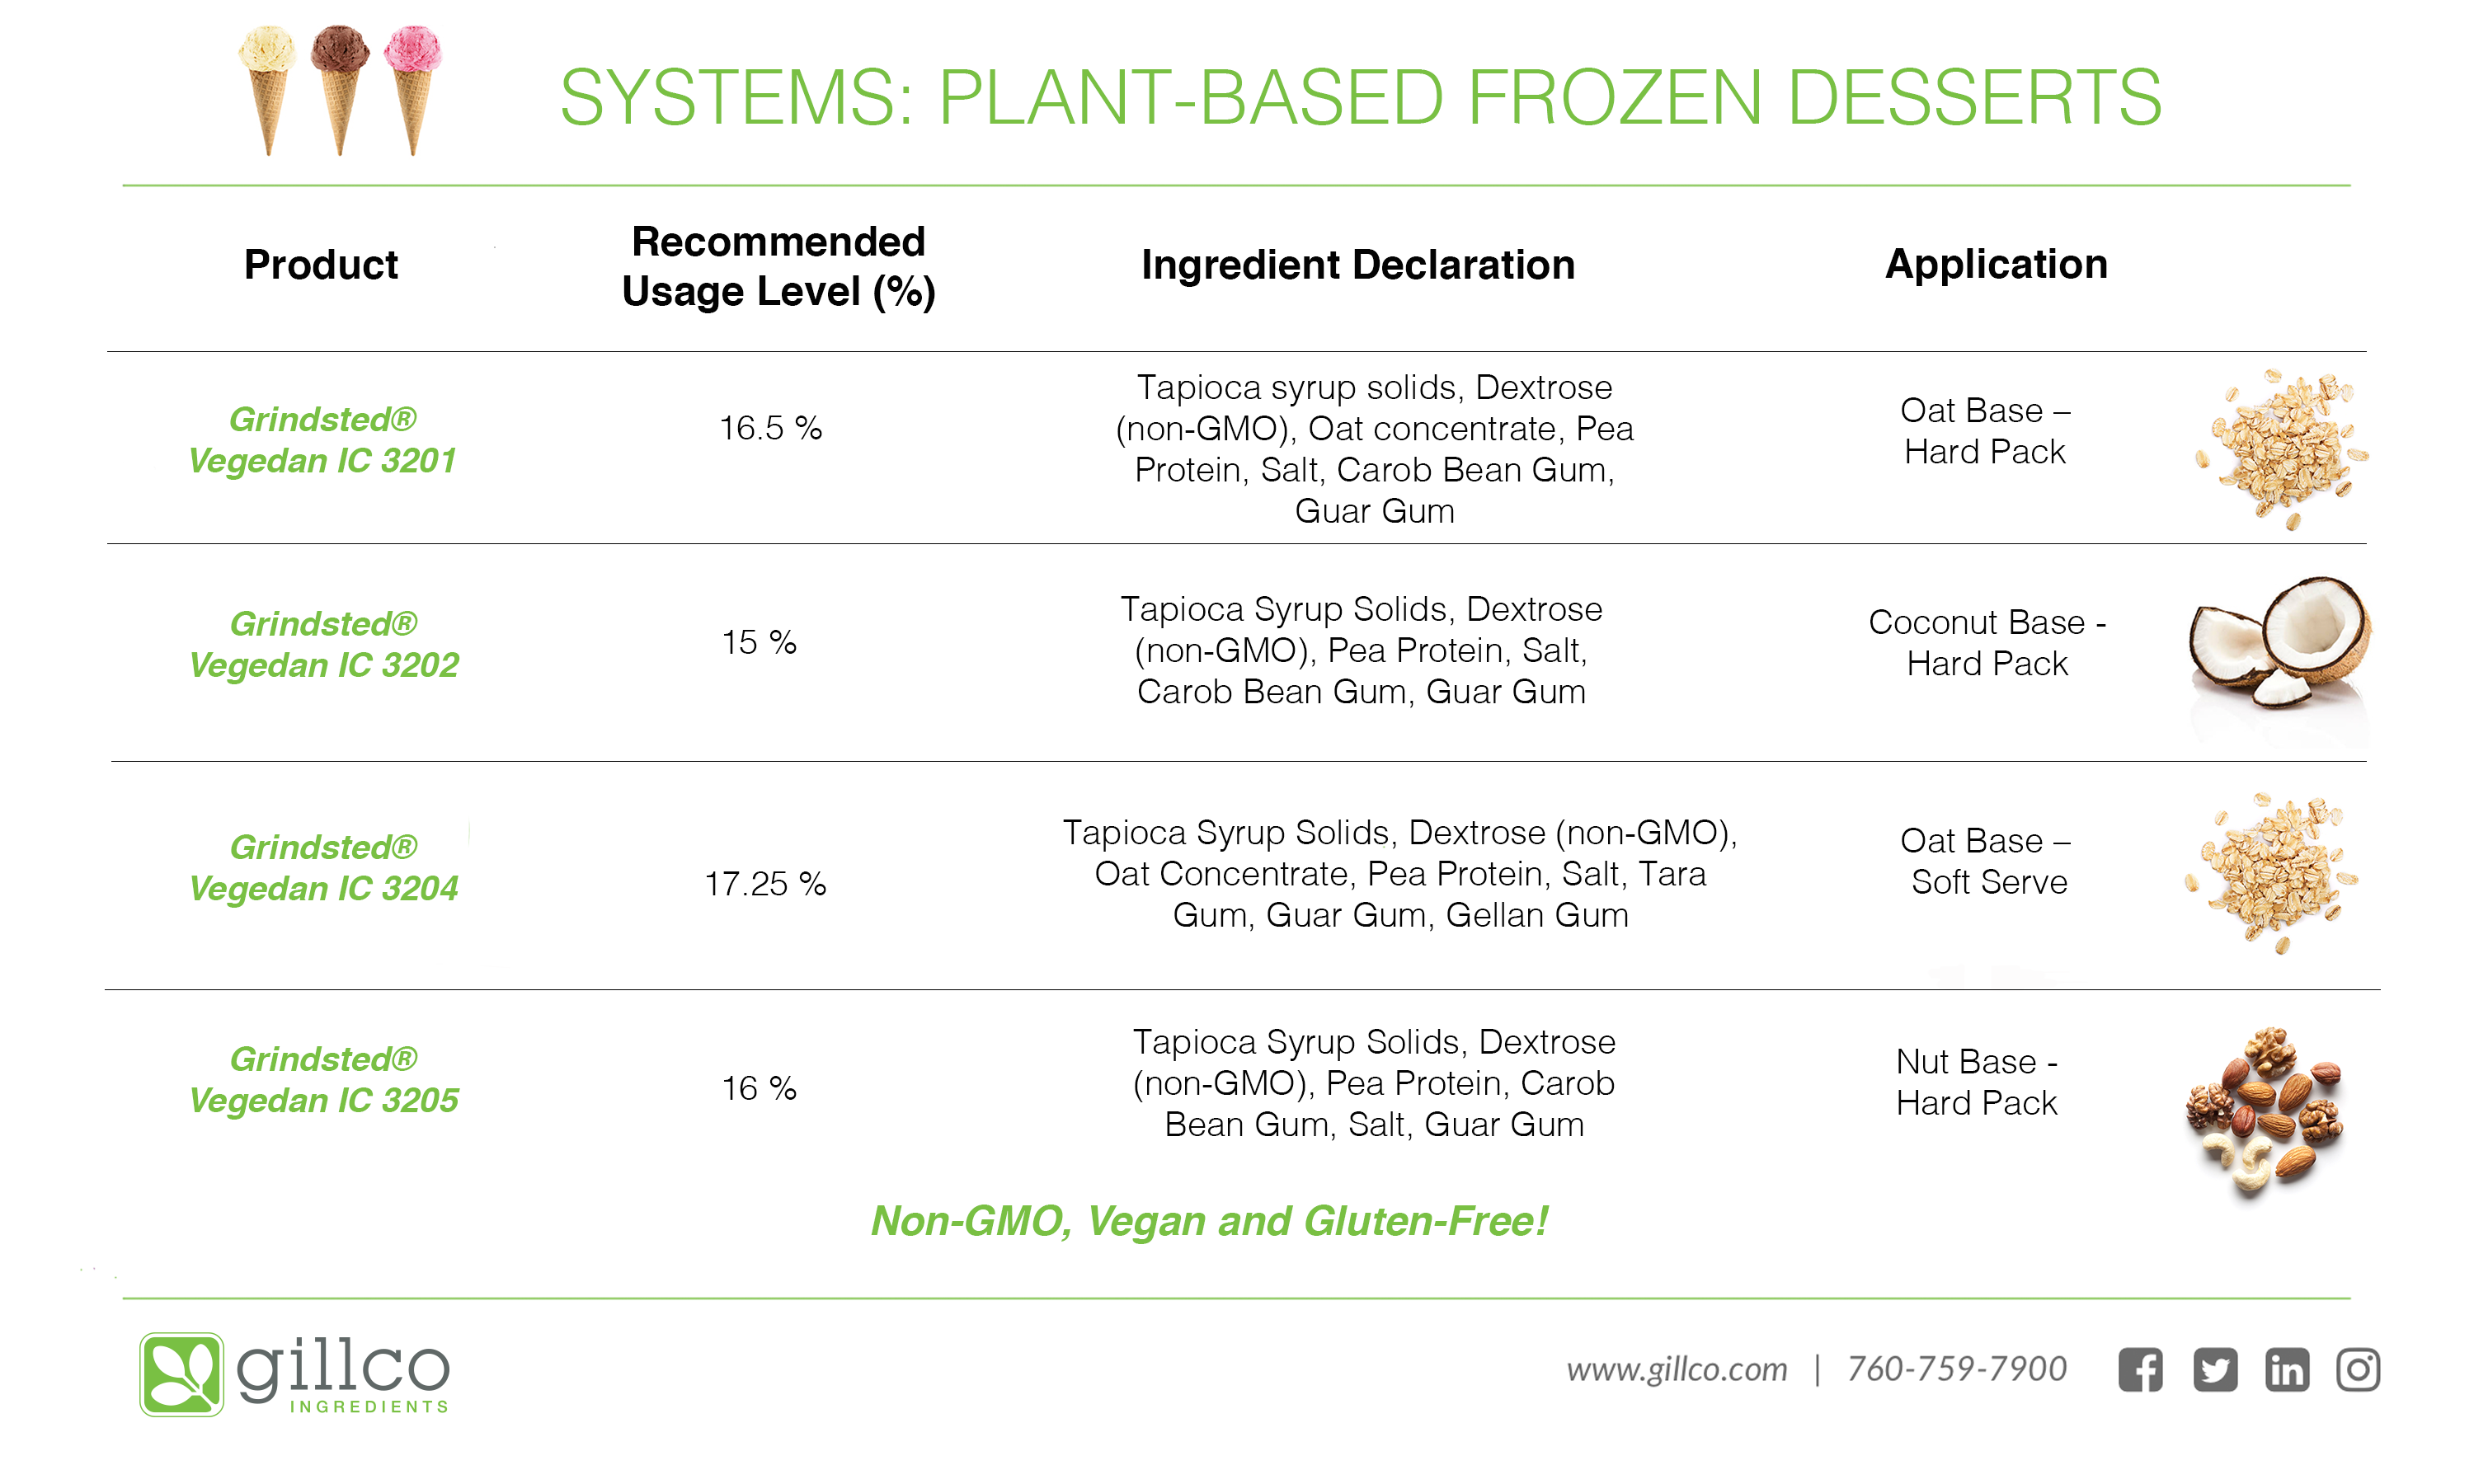 gillco ingredients plant based frozen solutions